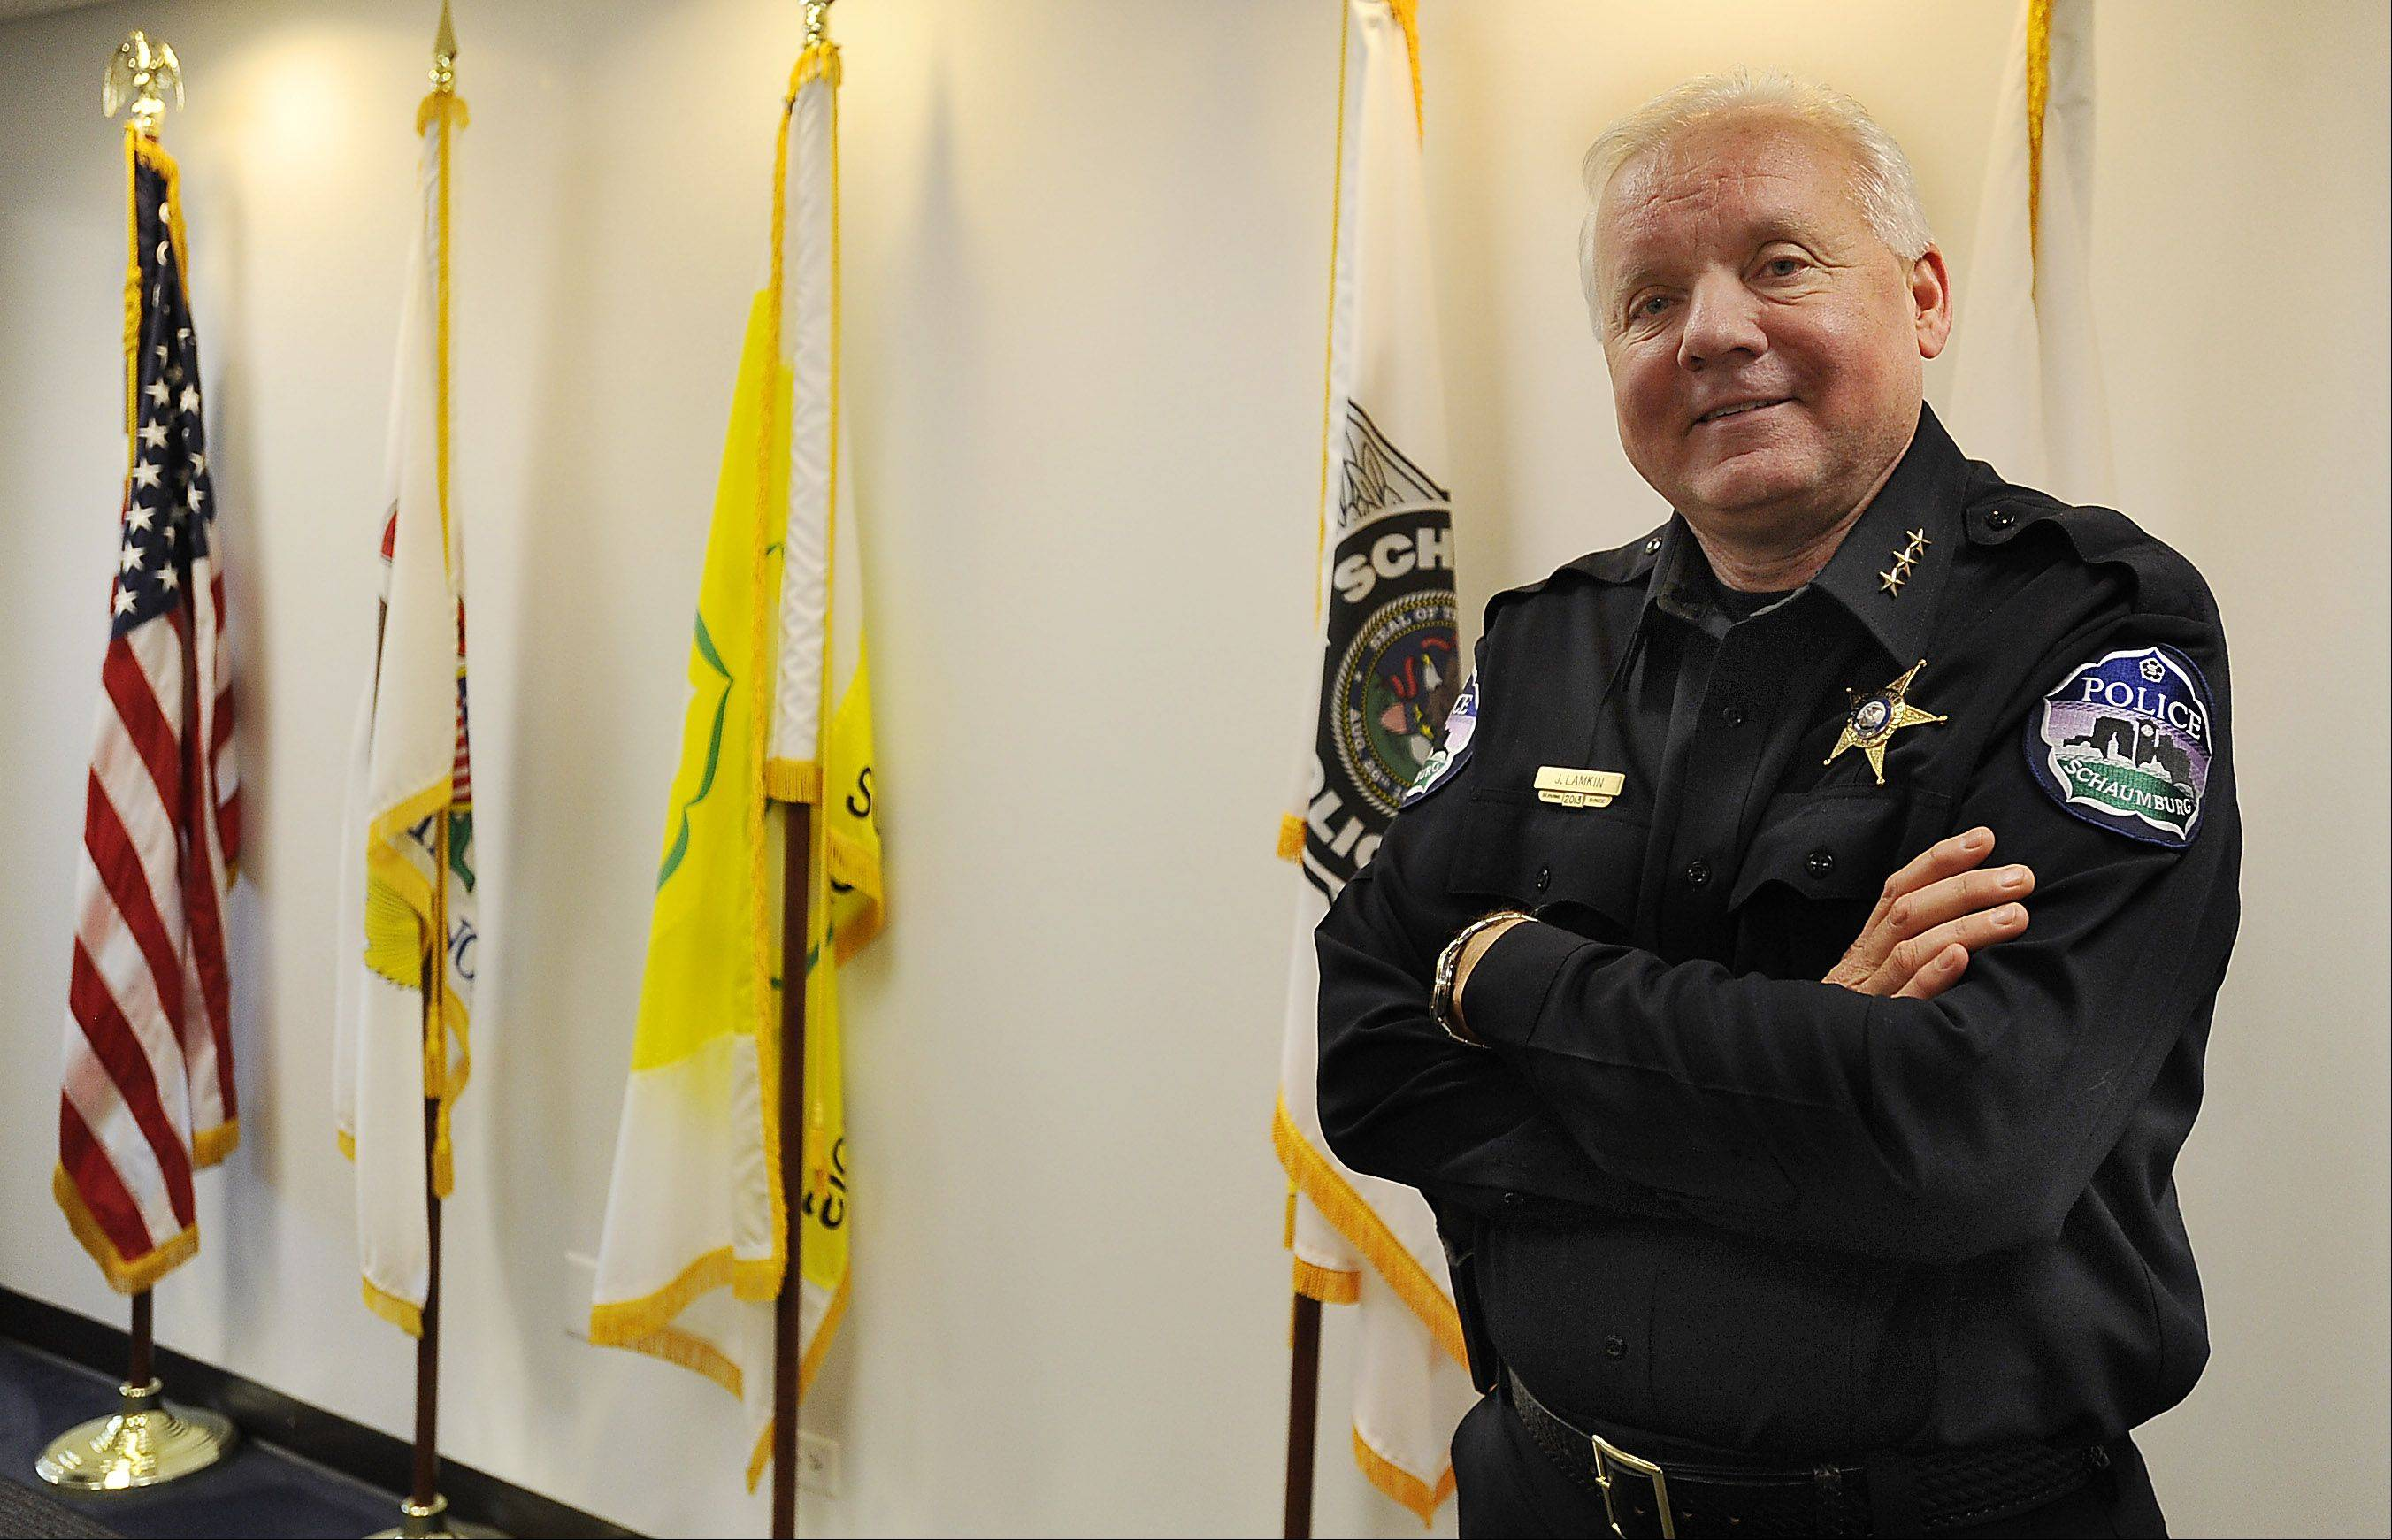 New Schaumburg Police Chief James Lamkin, who came to the village after 10 years as the head of St. Charles' police force, talks about his role and his plans for the department.